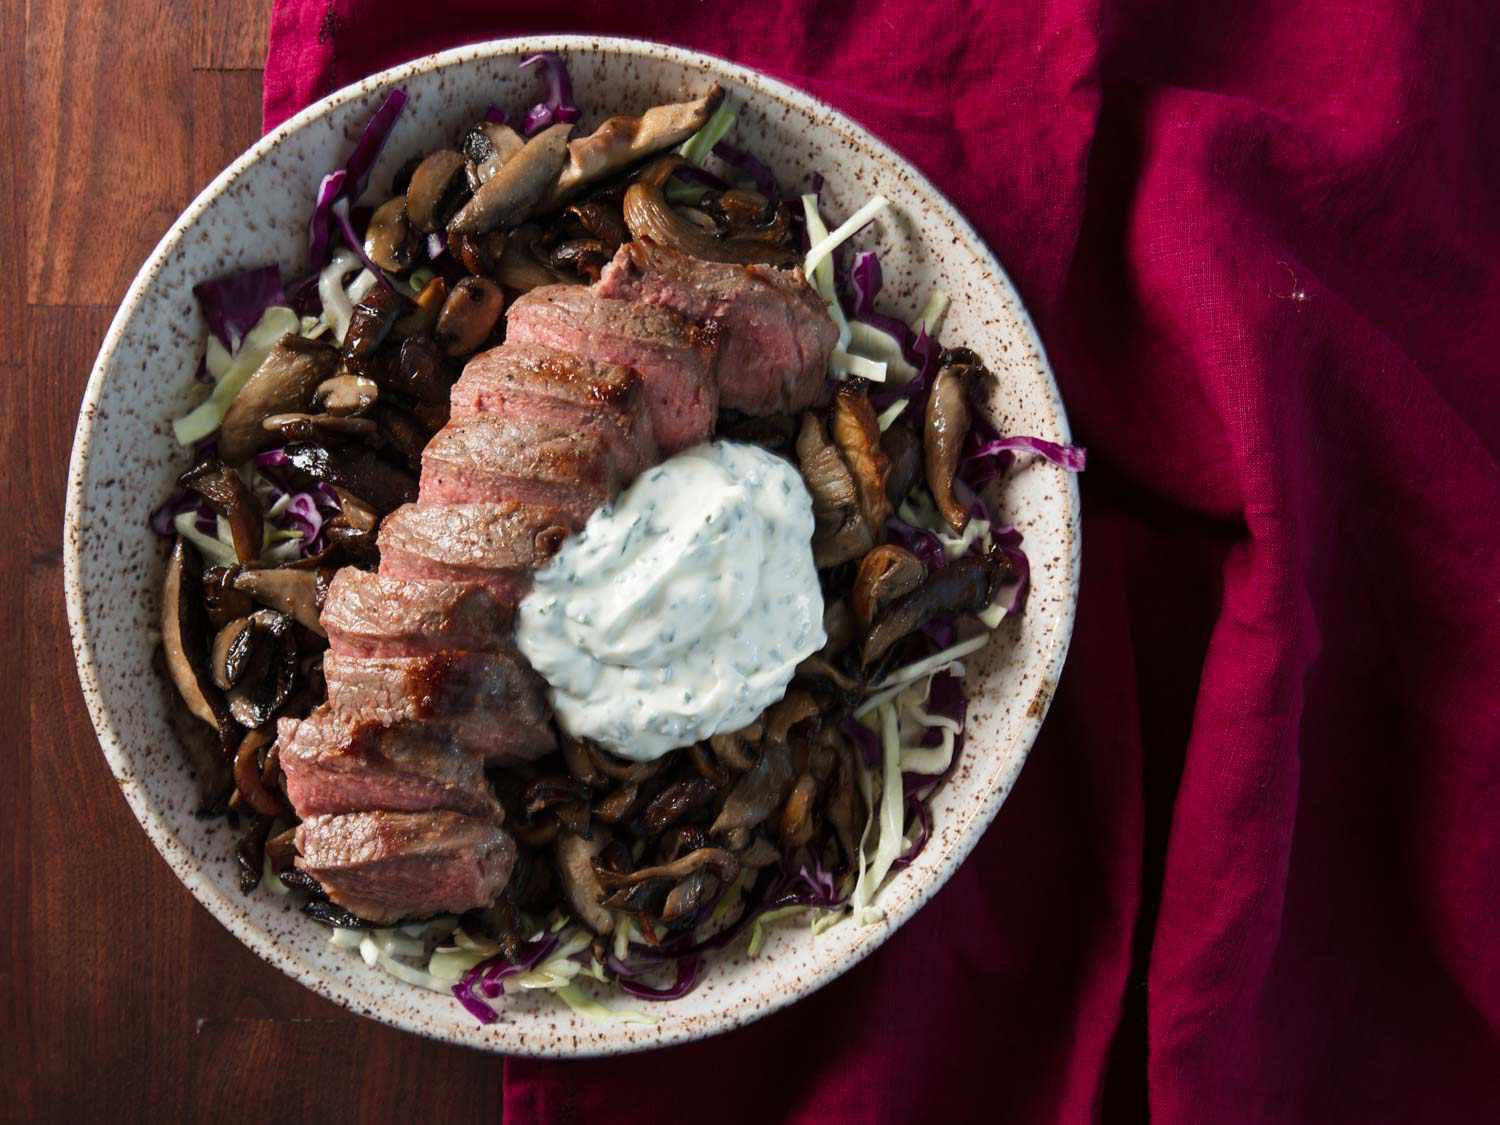 20180726-MHT-broiling-strip-steak-mushrooms-sour-cream-chives-finished-overhead-vicky-wasik-6-